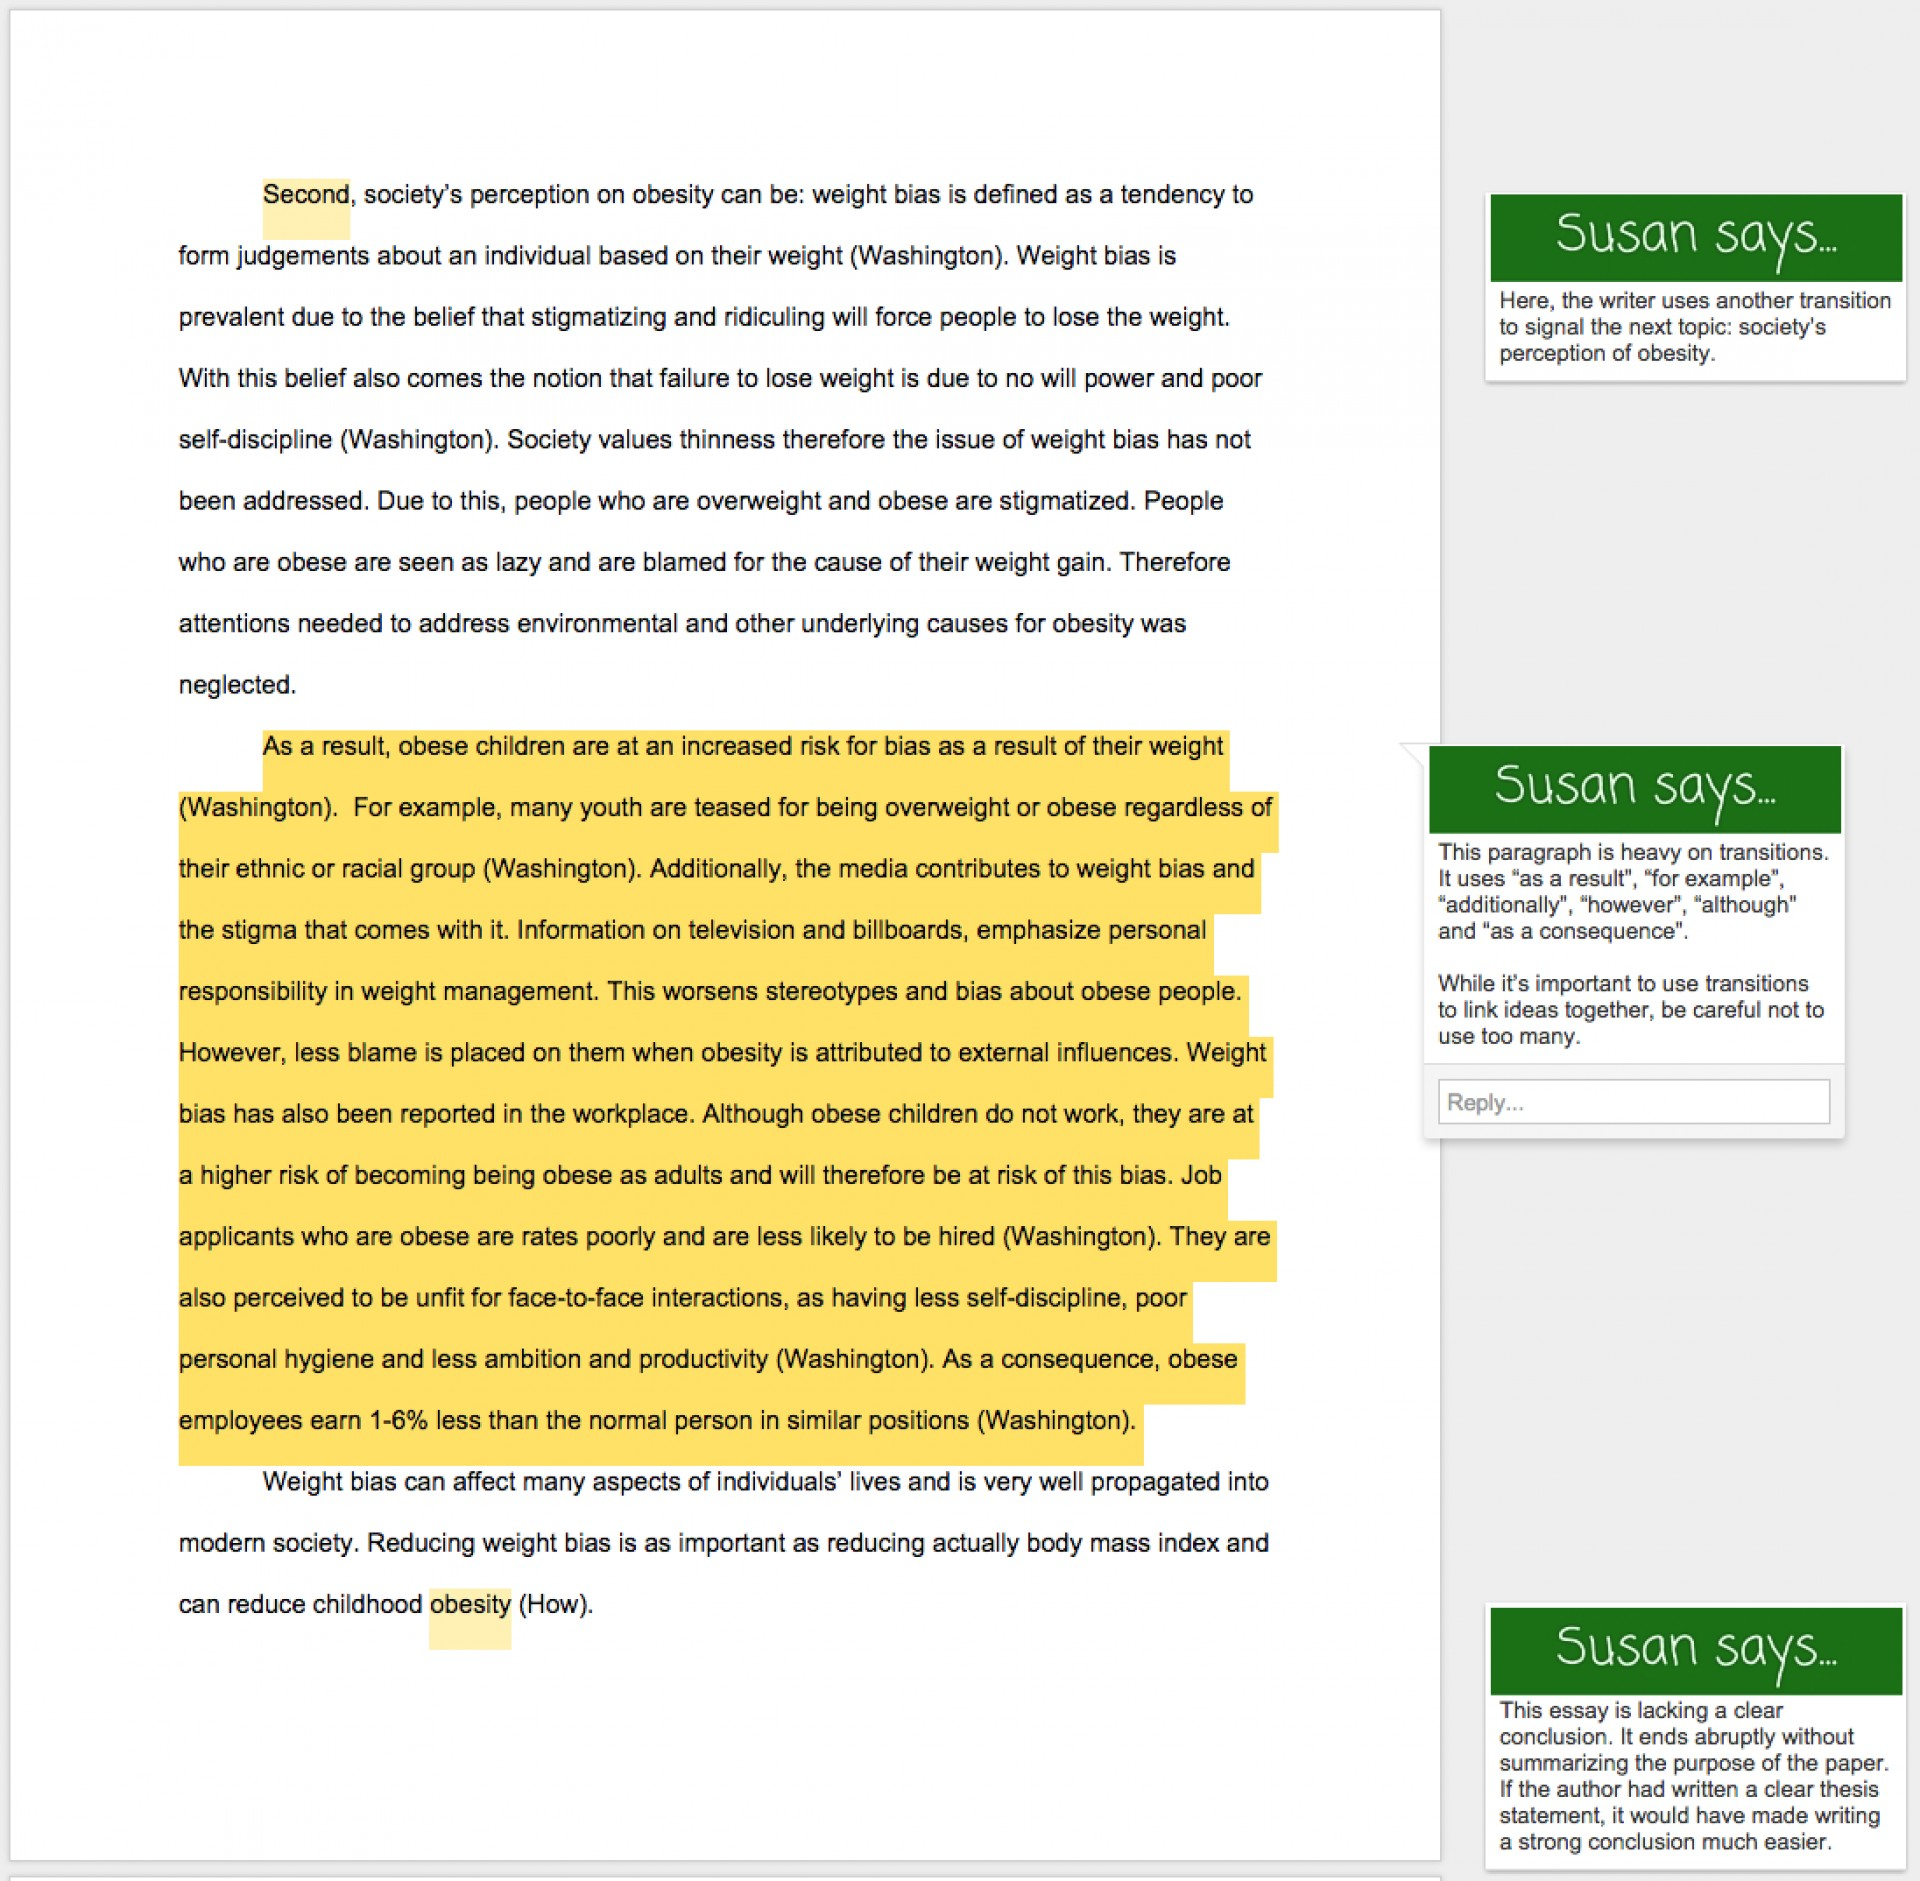 003 Essay Example Conclusion For Obesity Cause And Effect On Udgereport843webfc2com L Top Childhood 1920